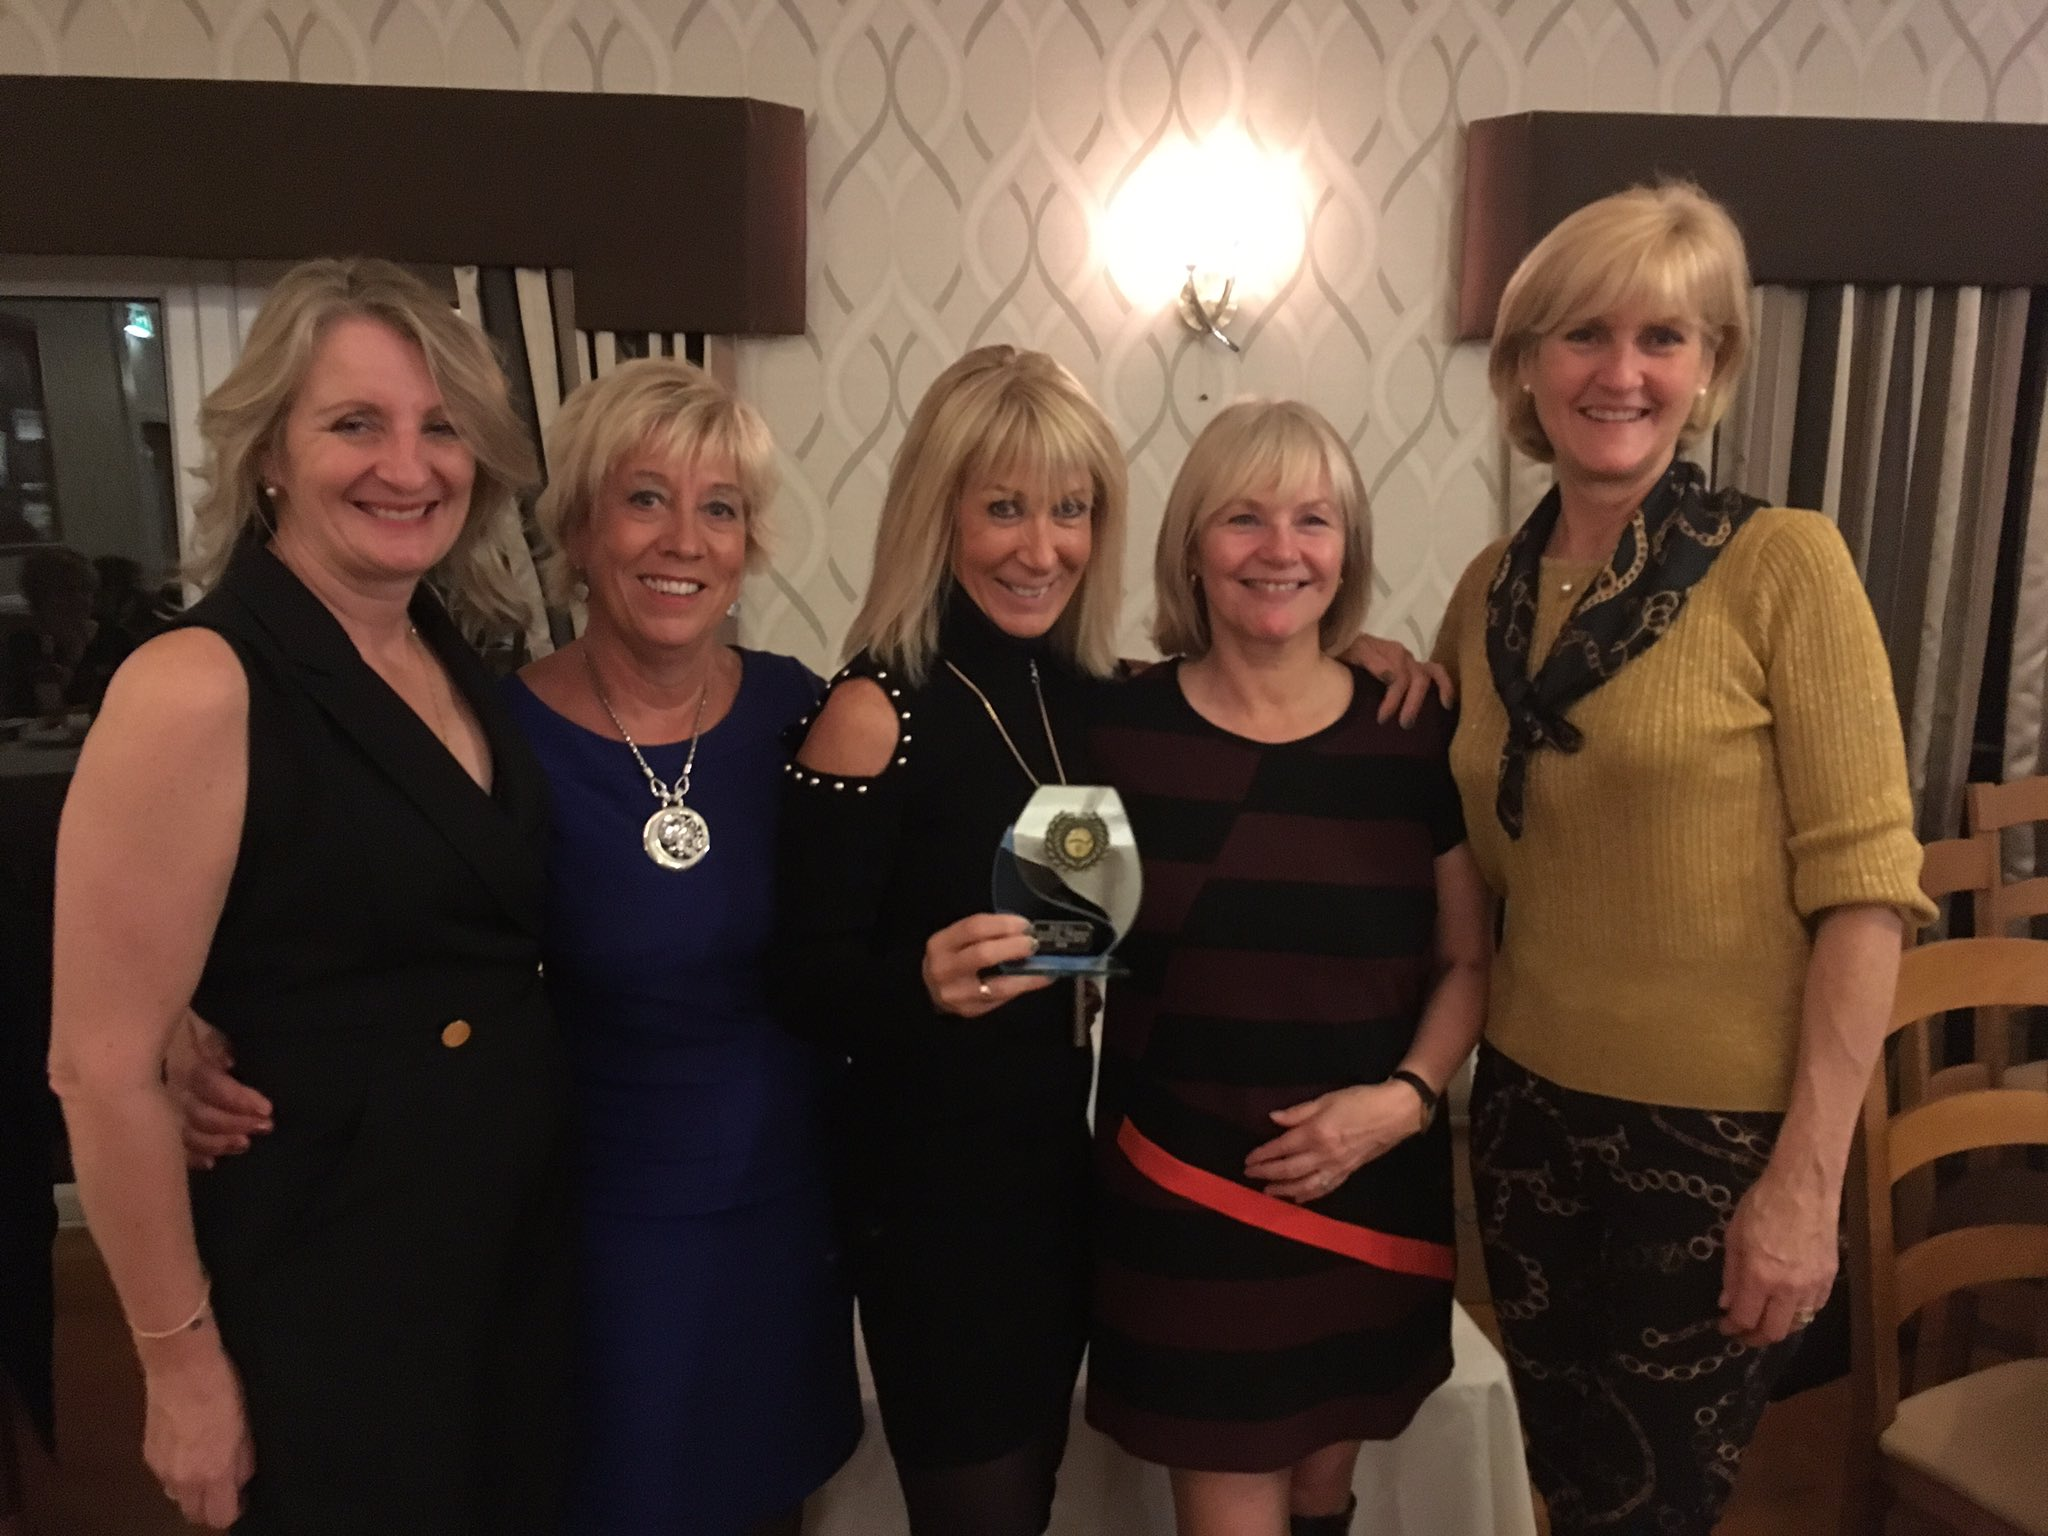 The Evening League ladies receiving their semi finalists trophy at the presentation and dinner held at The Manor https://t.co/lval7Vo0b2